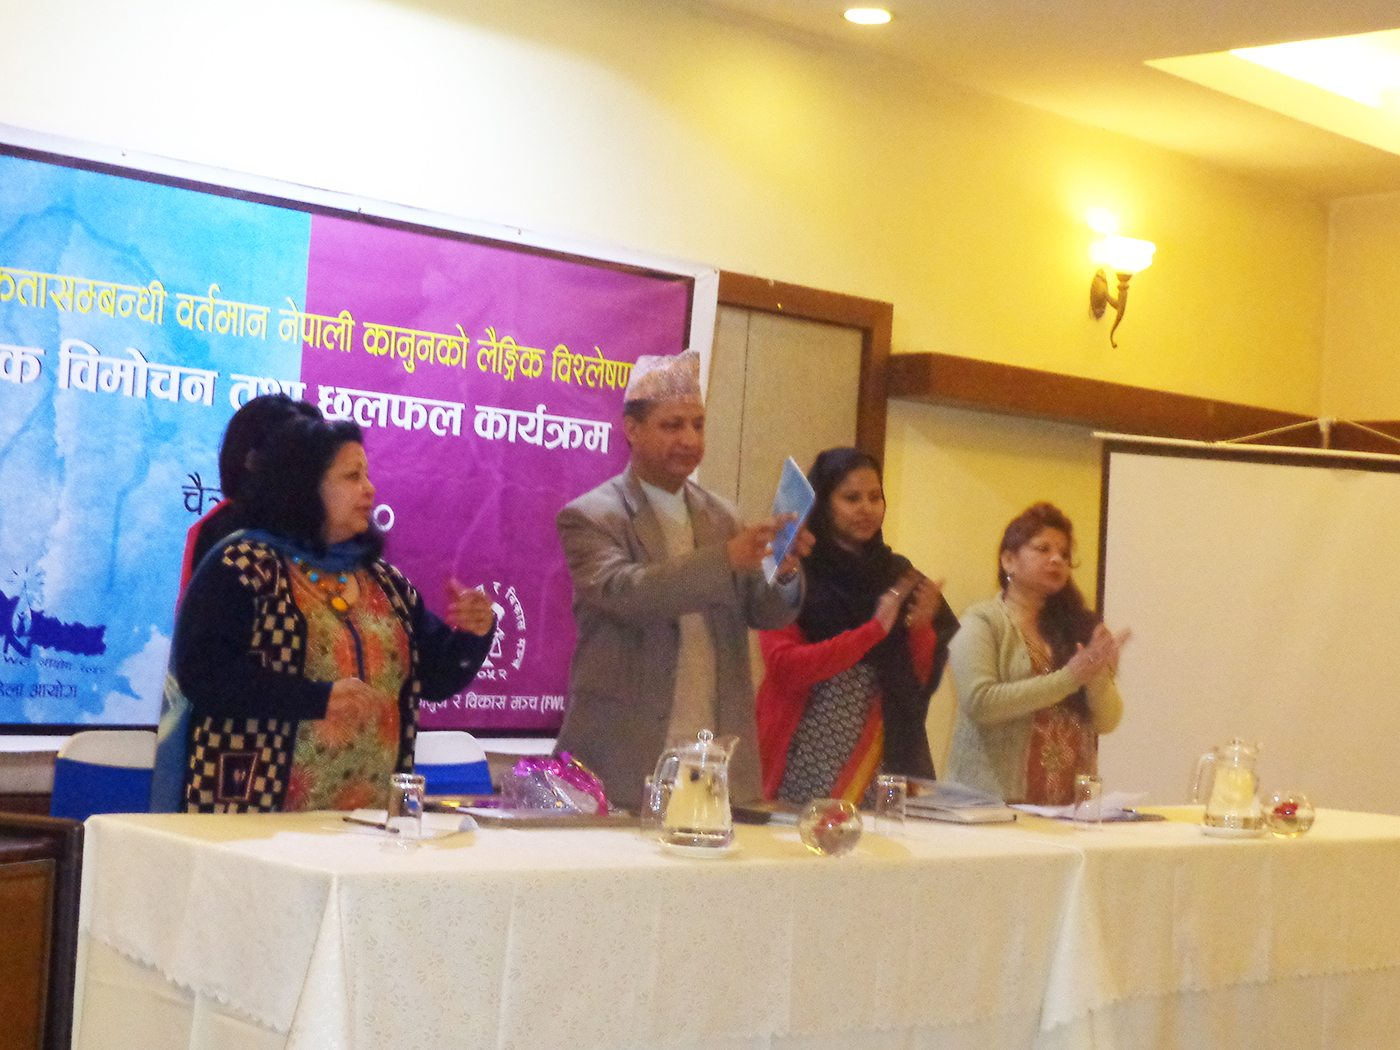 Book Launch of the Gender Analysis of Citizenship Law by the Secretary of Ministry of Home Affairs in March 2014